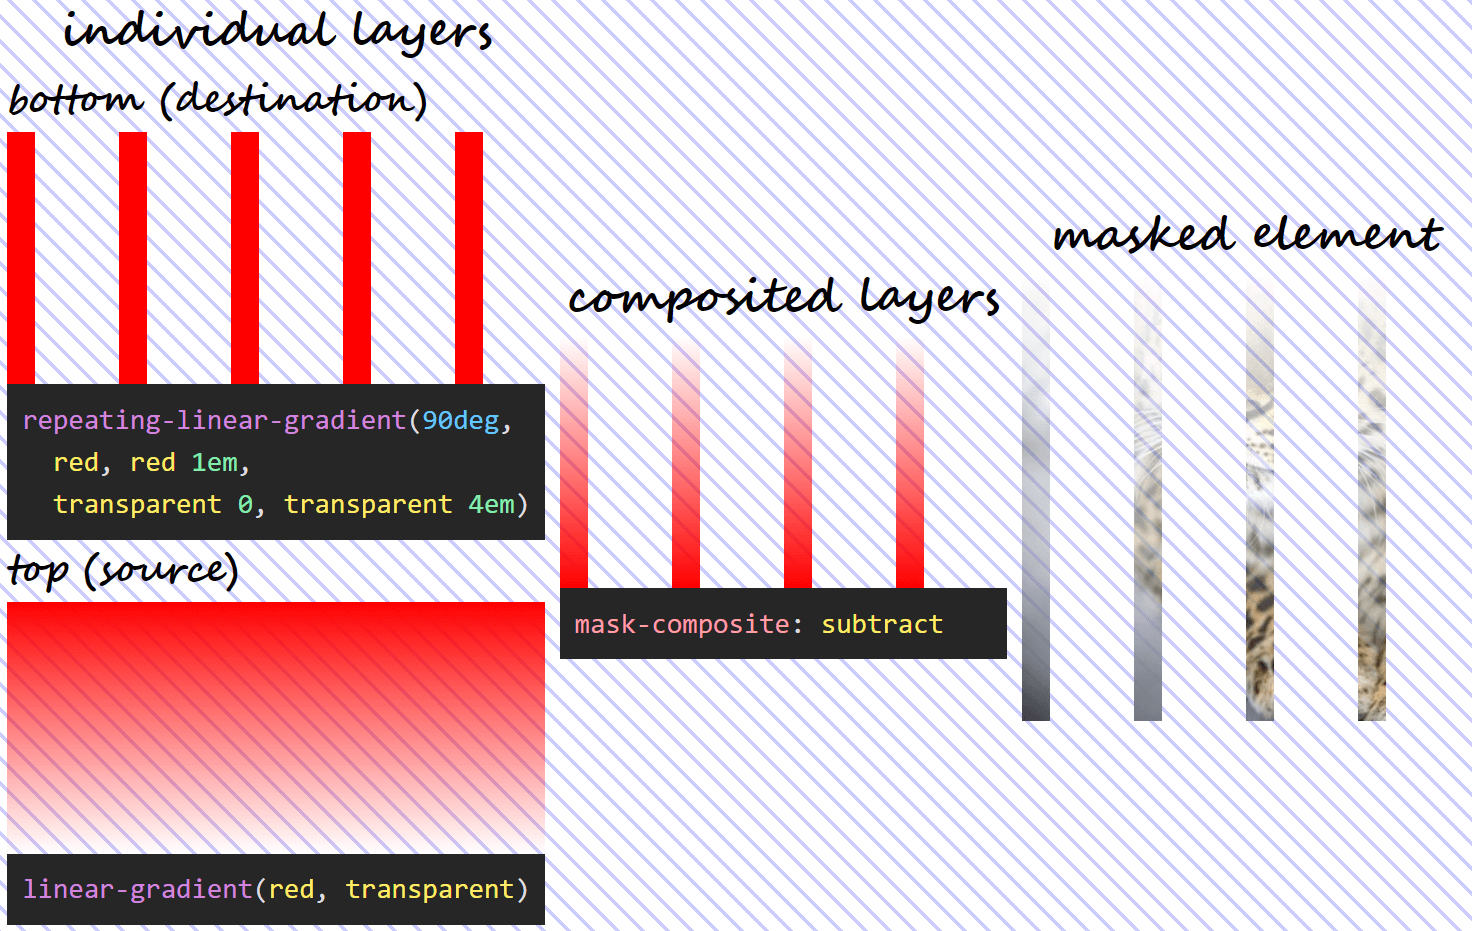 Three column illustration of mask-composite: subtract in action. On the first column, we have the individual gradient layers (both the visual results and the generating code), swapped - the one that was previously on top is now at the bottom and the other way around. On the second column, we can see what the layer resulting as a result of compositing using the subtract operation looks like. And on the third column, we see this resulting mask layer applied on an image of an Amur leopard.